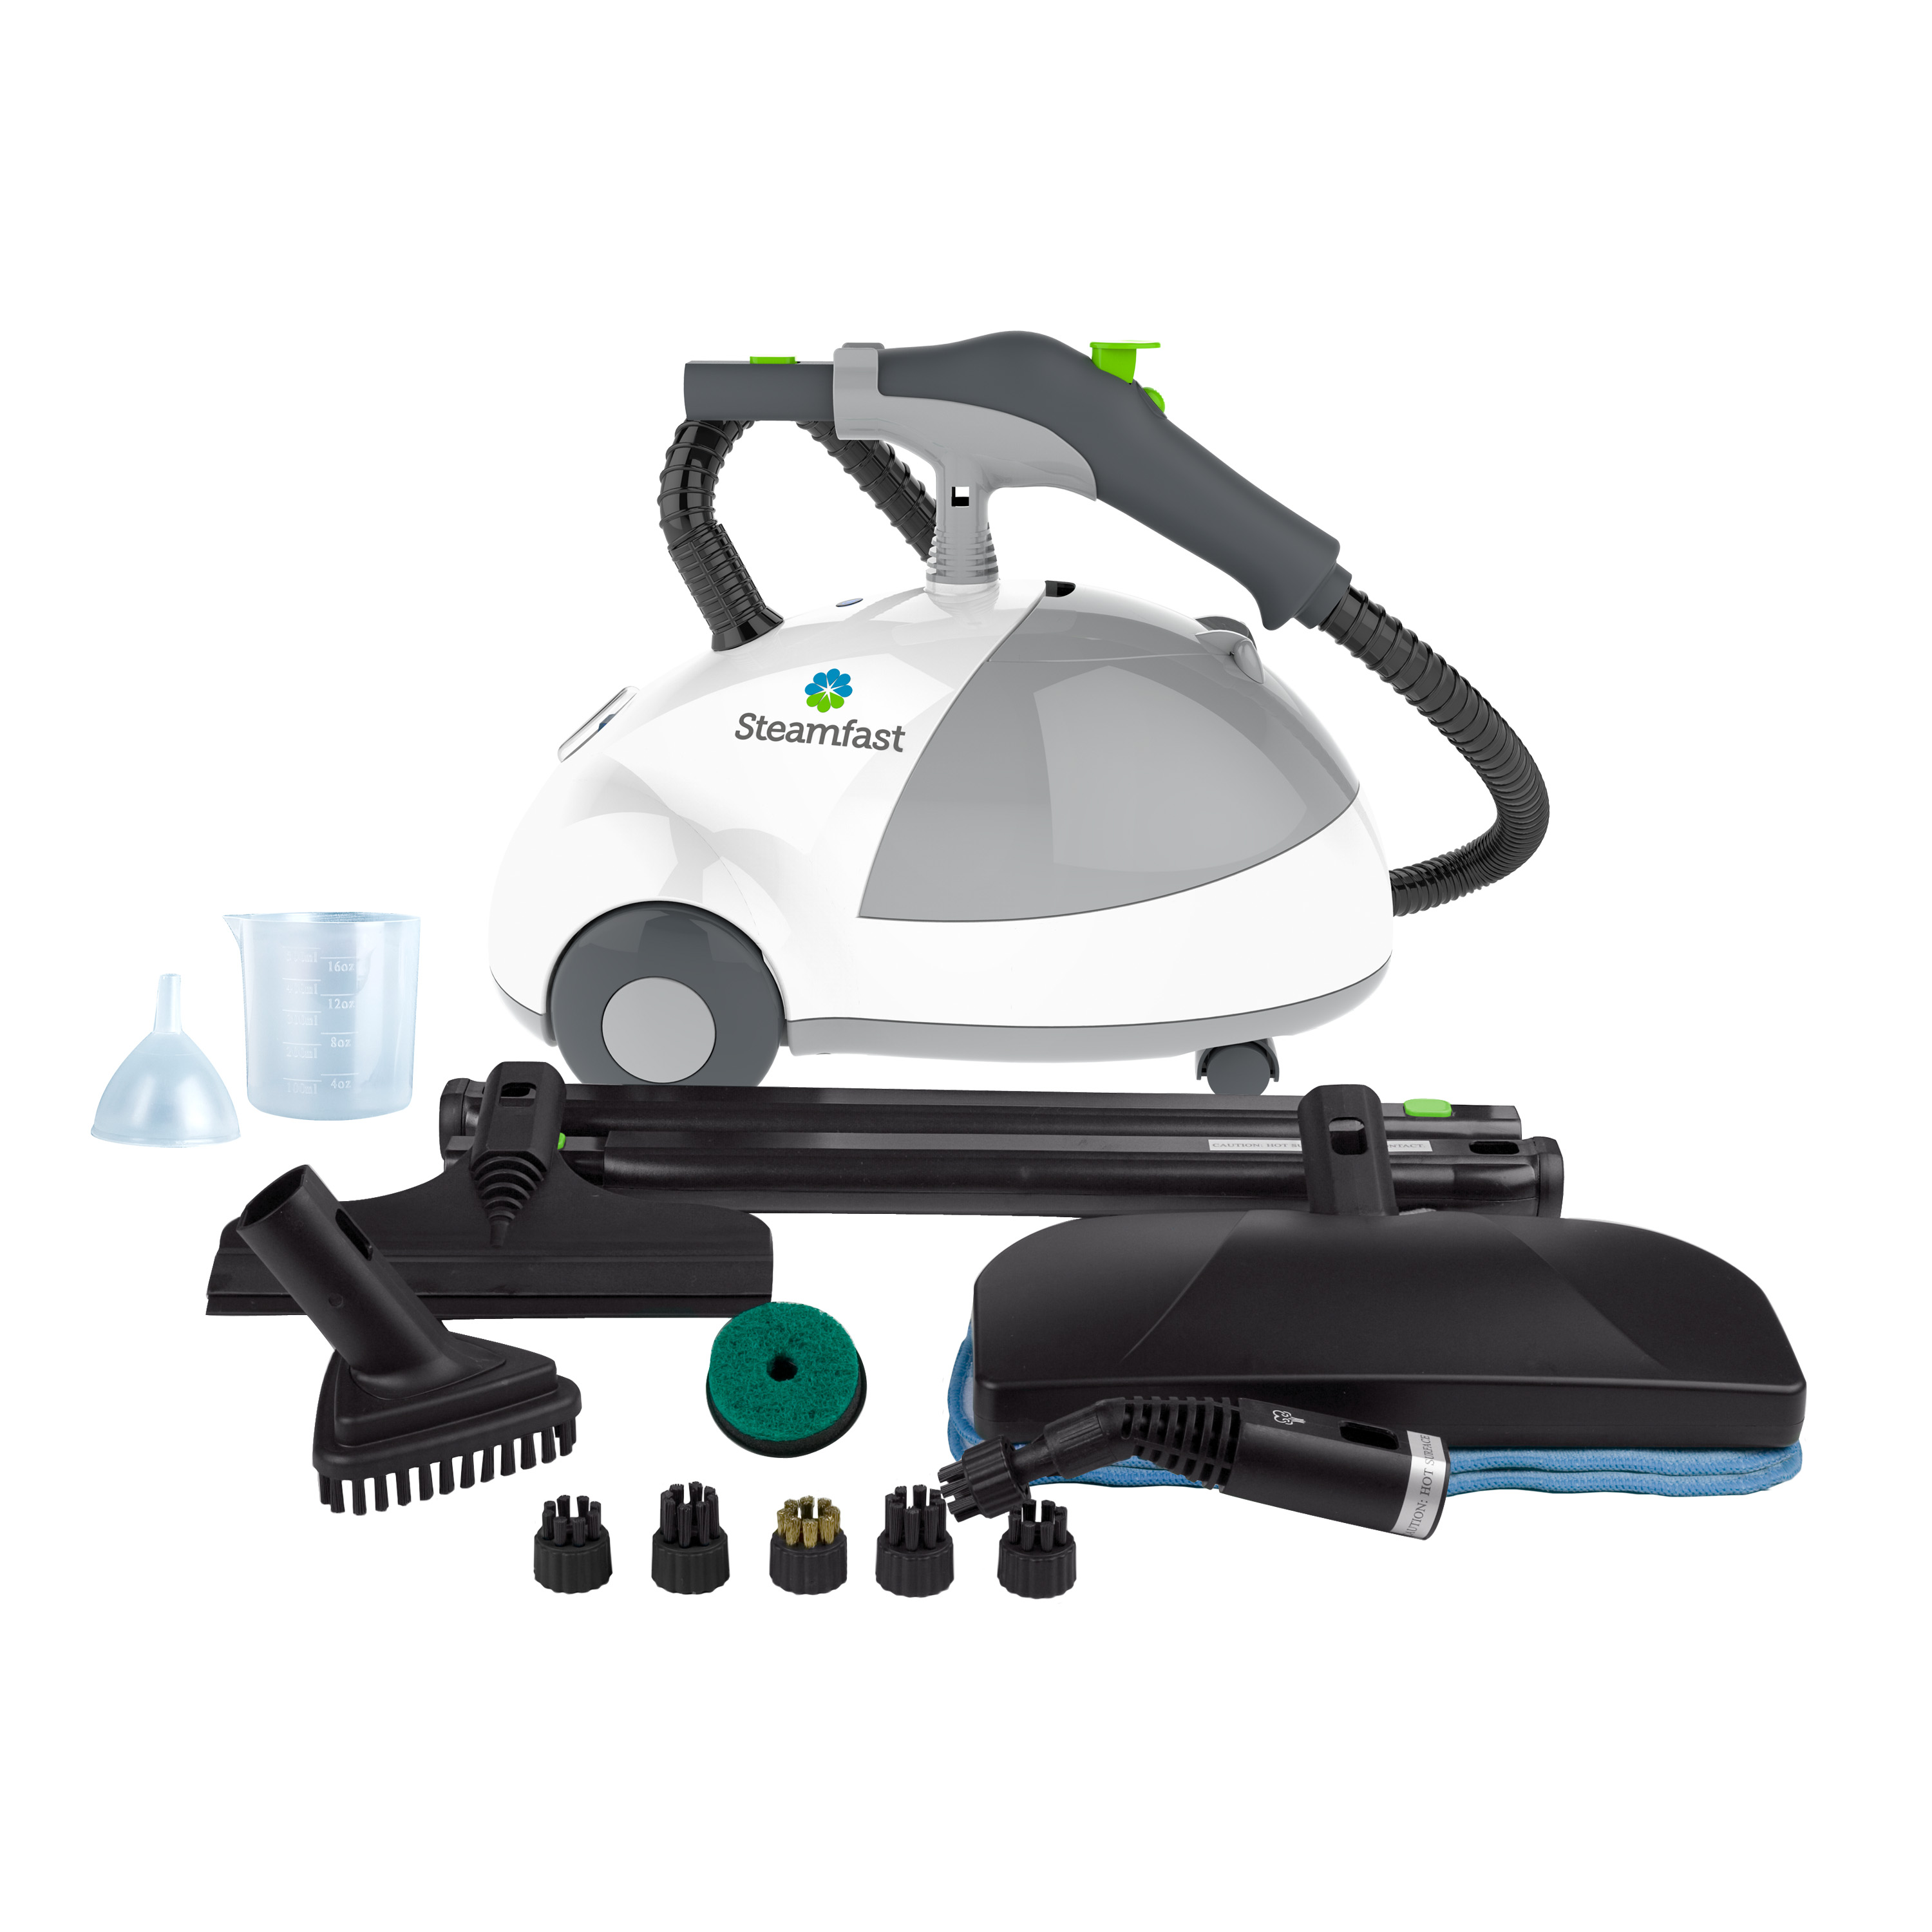 SteamFast Heavy-Duty Canister Steam Cleaner, SF-275